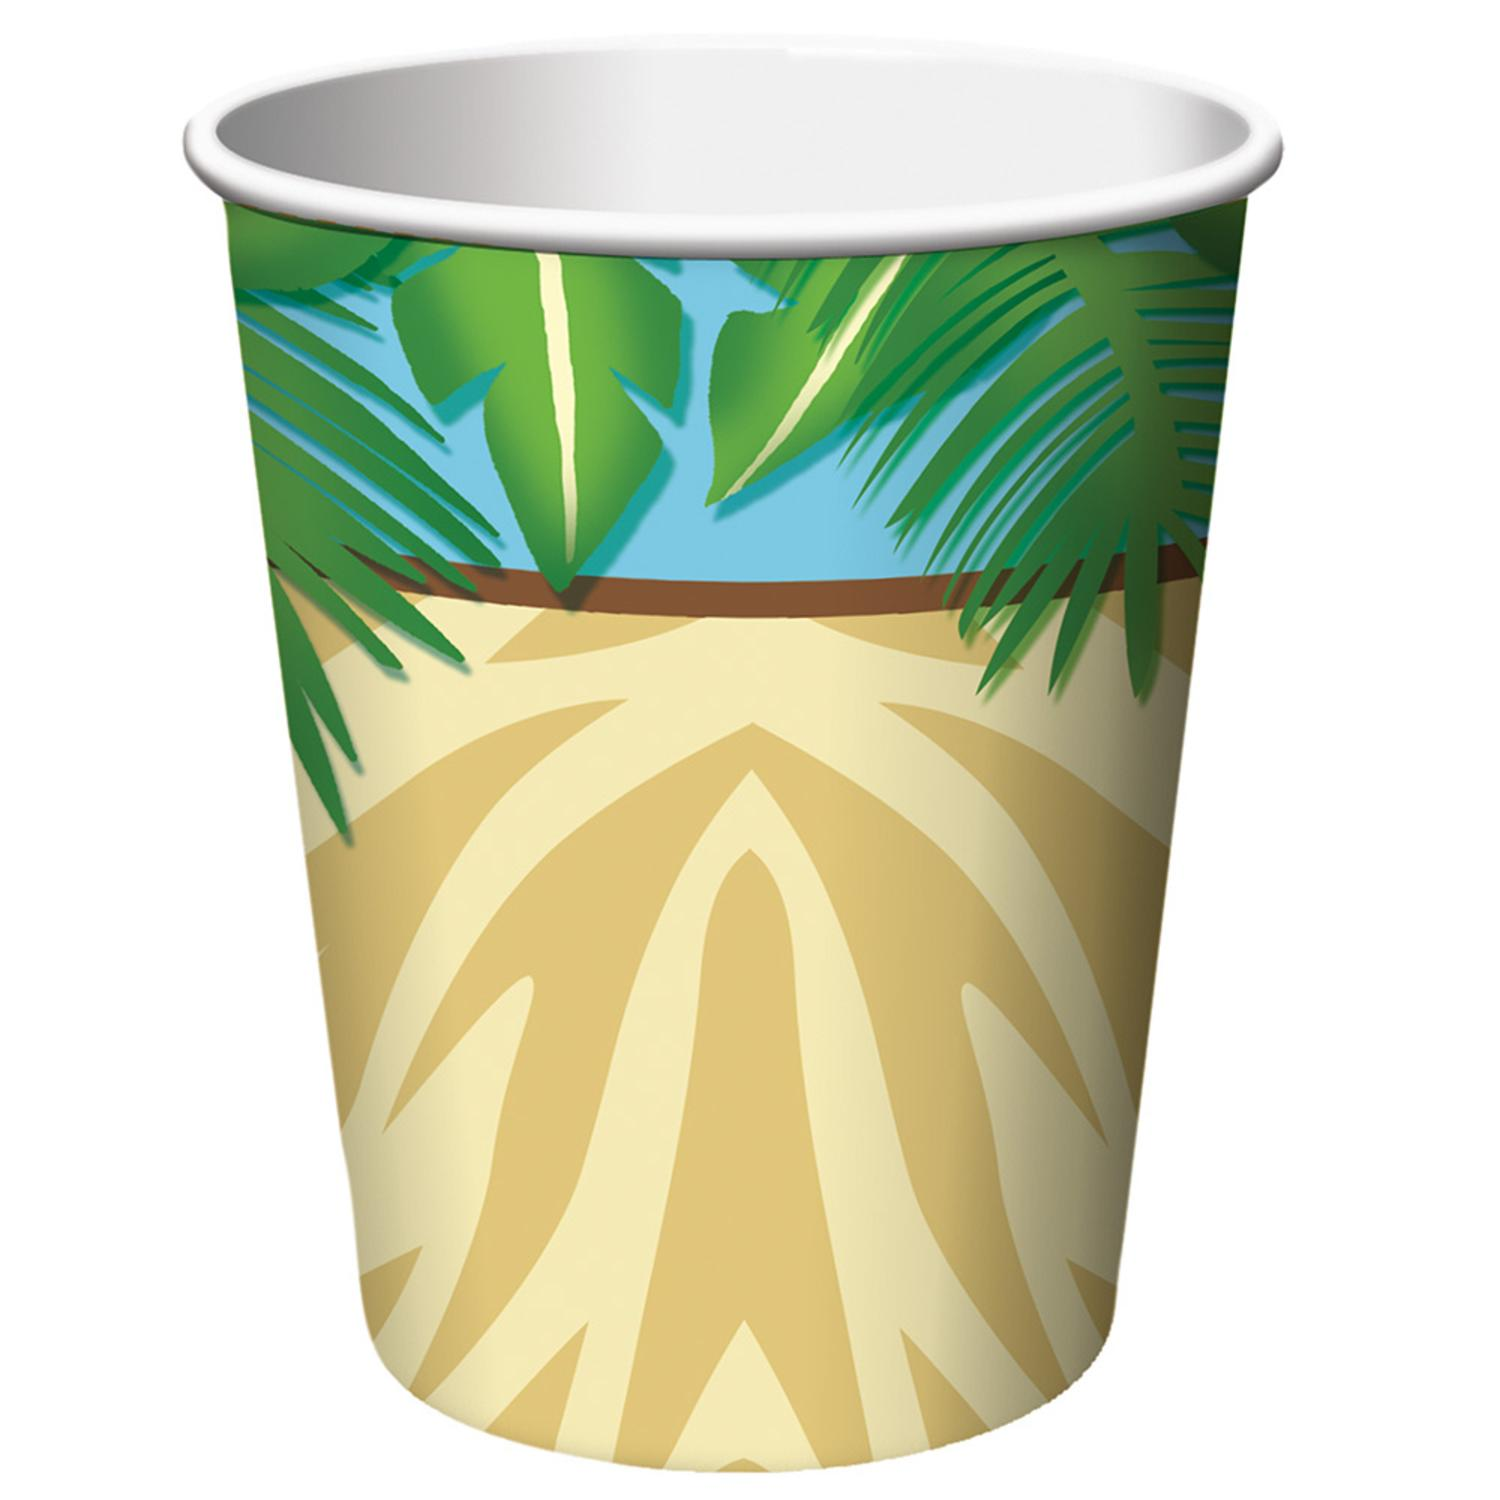 Club Pack of 96 Safari Adventure Disposable Paper Hot and Cold Drinking Party Cups 9 oz.